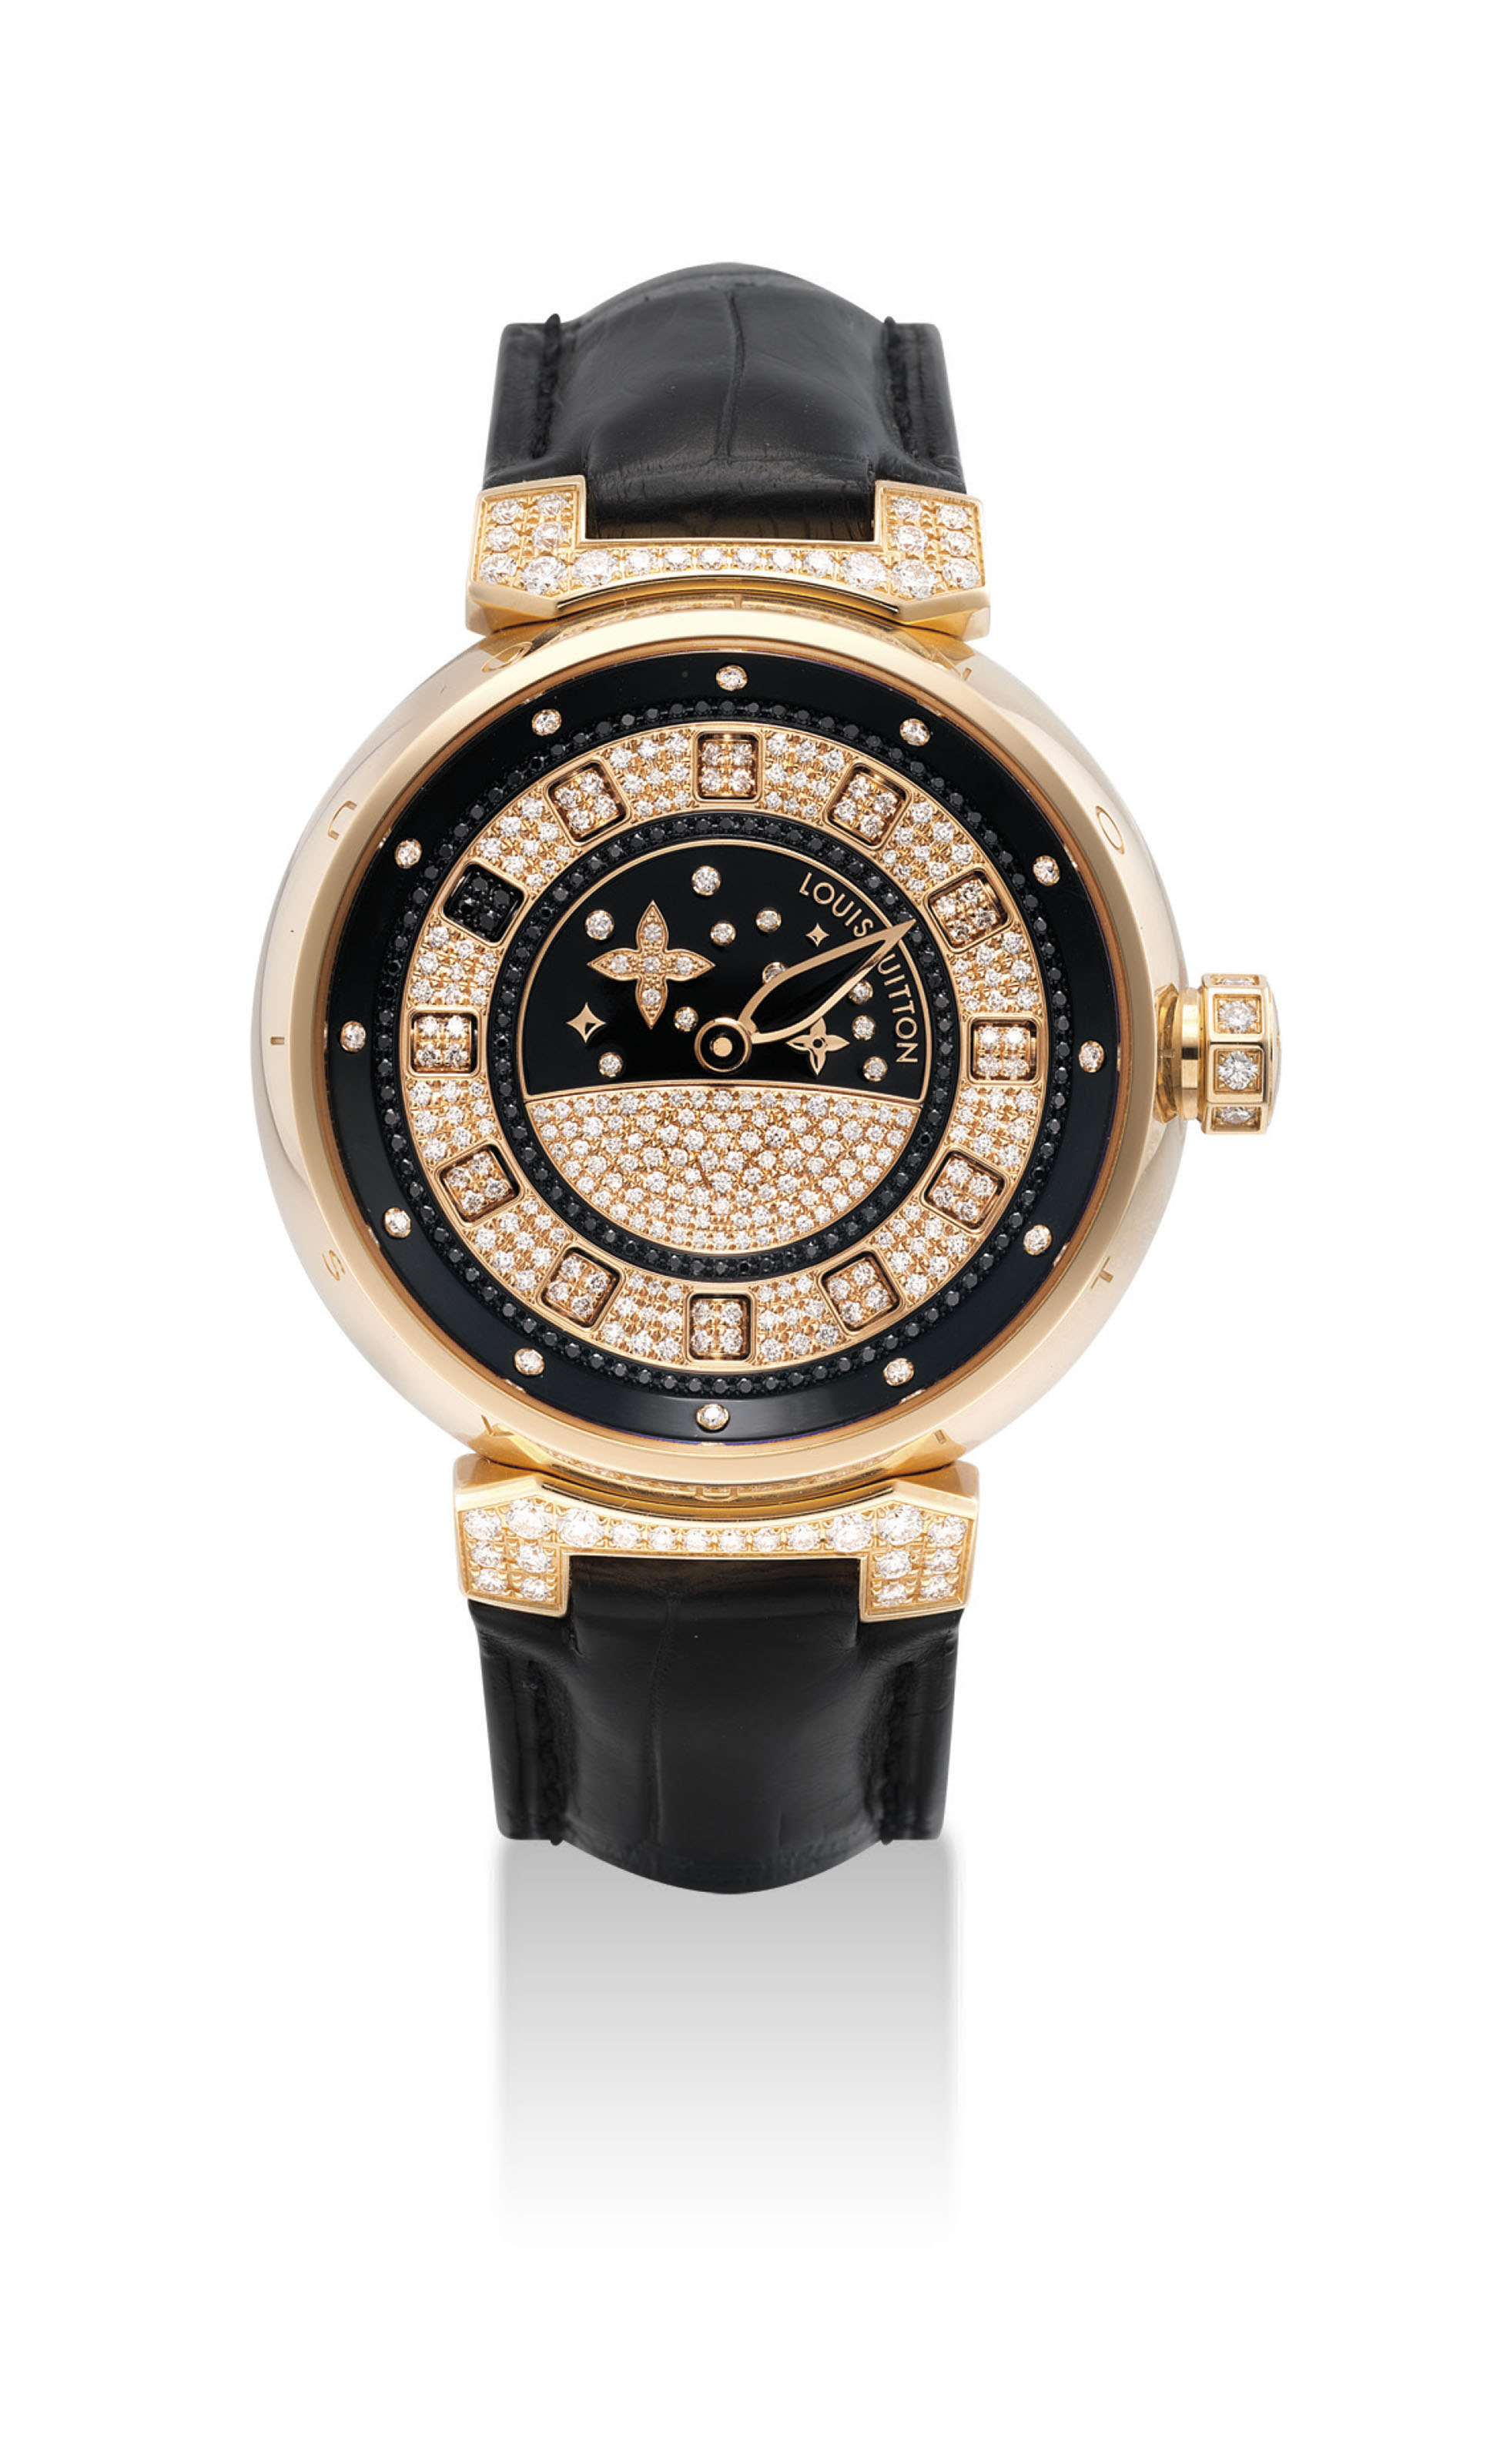 LOUIS VUITTON. A FINE 18K PINK GOLD, DIAMOND AND BLACK DIAMOND-SET AUTOMATIC WRISTWATCH WITH ROTATING CUBE HOUR DISPLAY